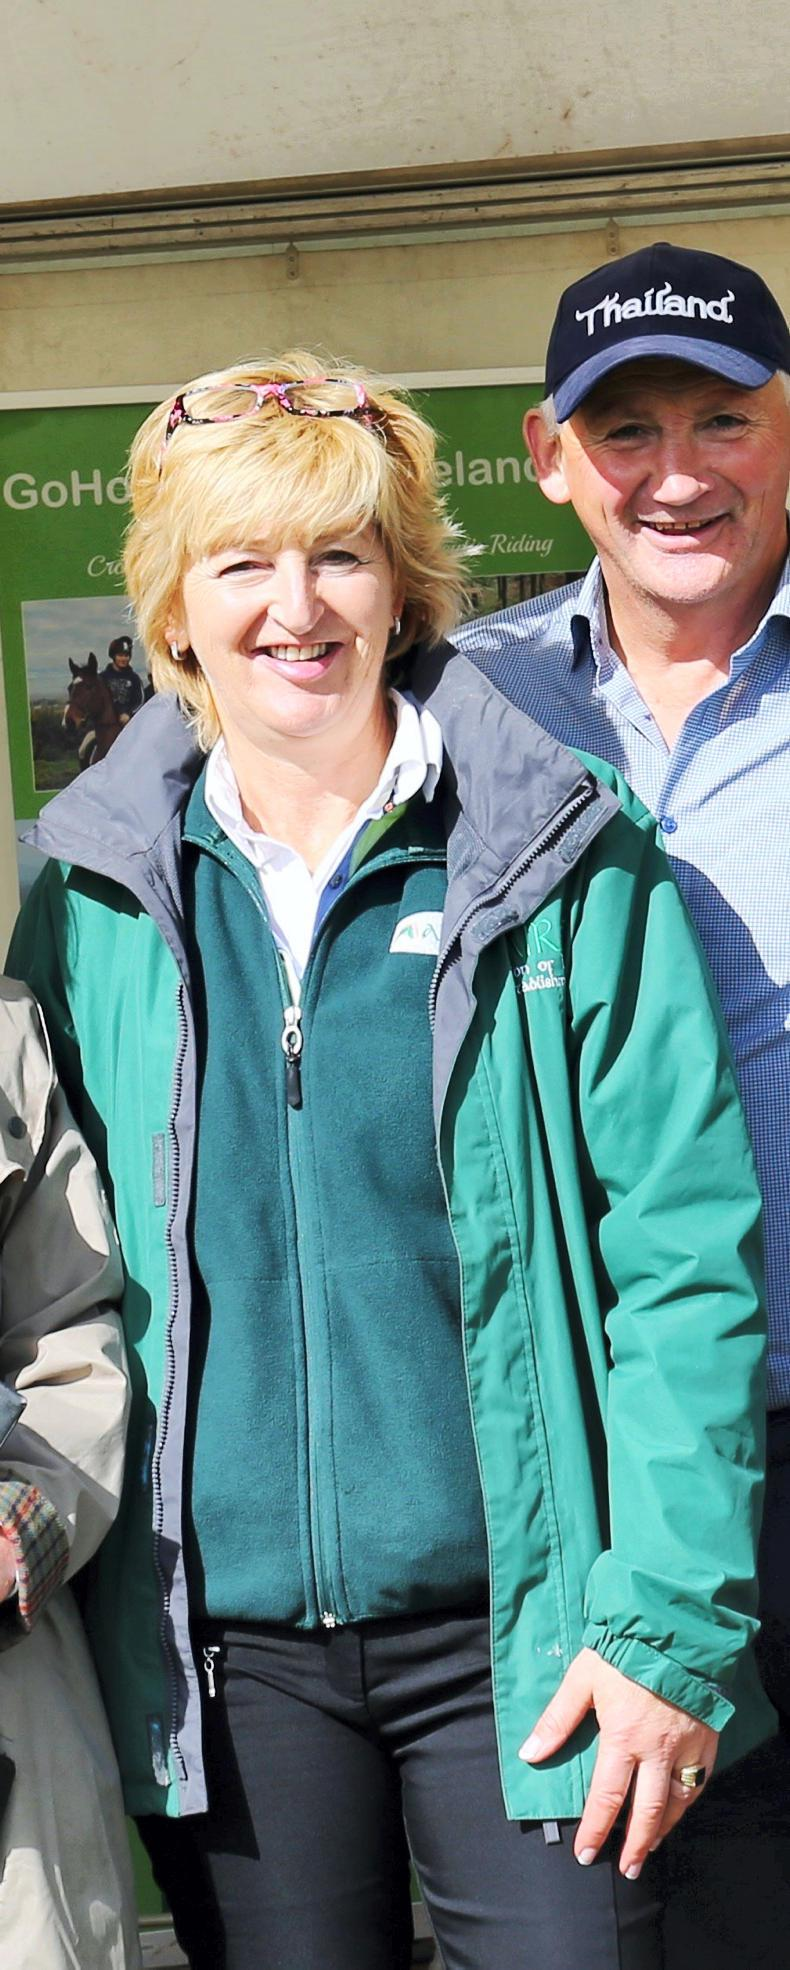 NEWS: Agriculture status call for riding centres